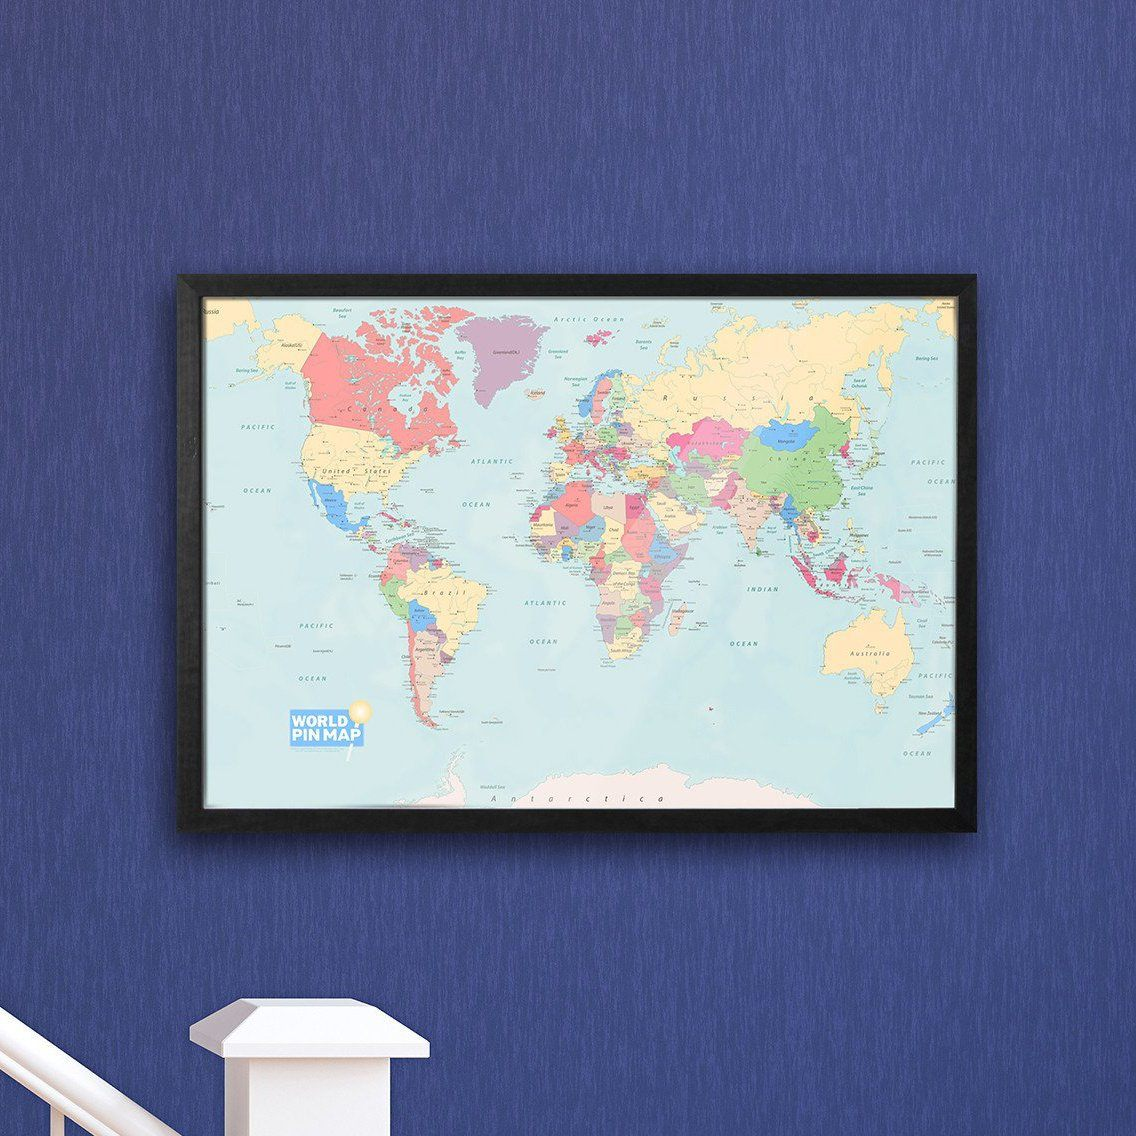 World map pinboard framed map of the world to plan and record world map pinboard framed map of the world to plan and record travel map marketing gumiabroncs